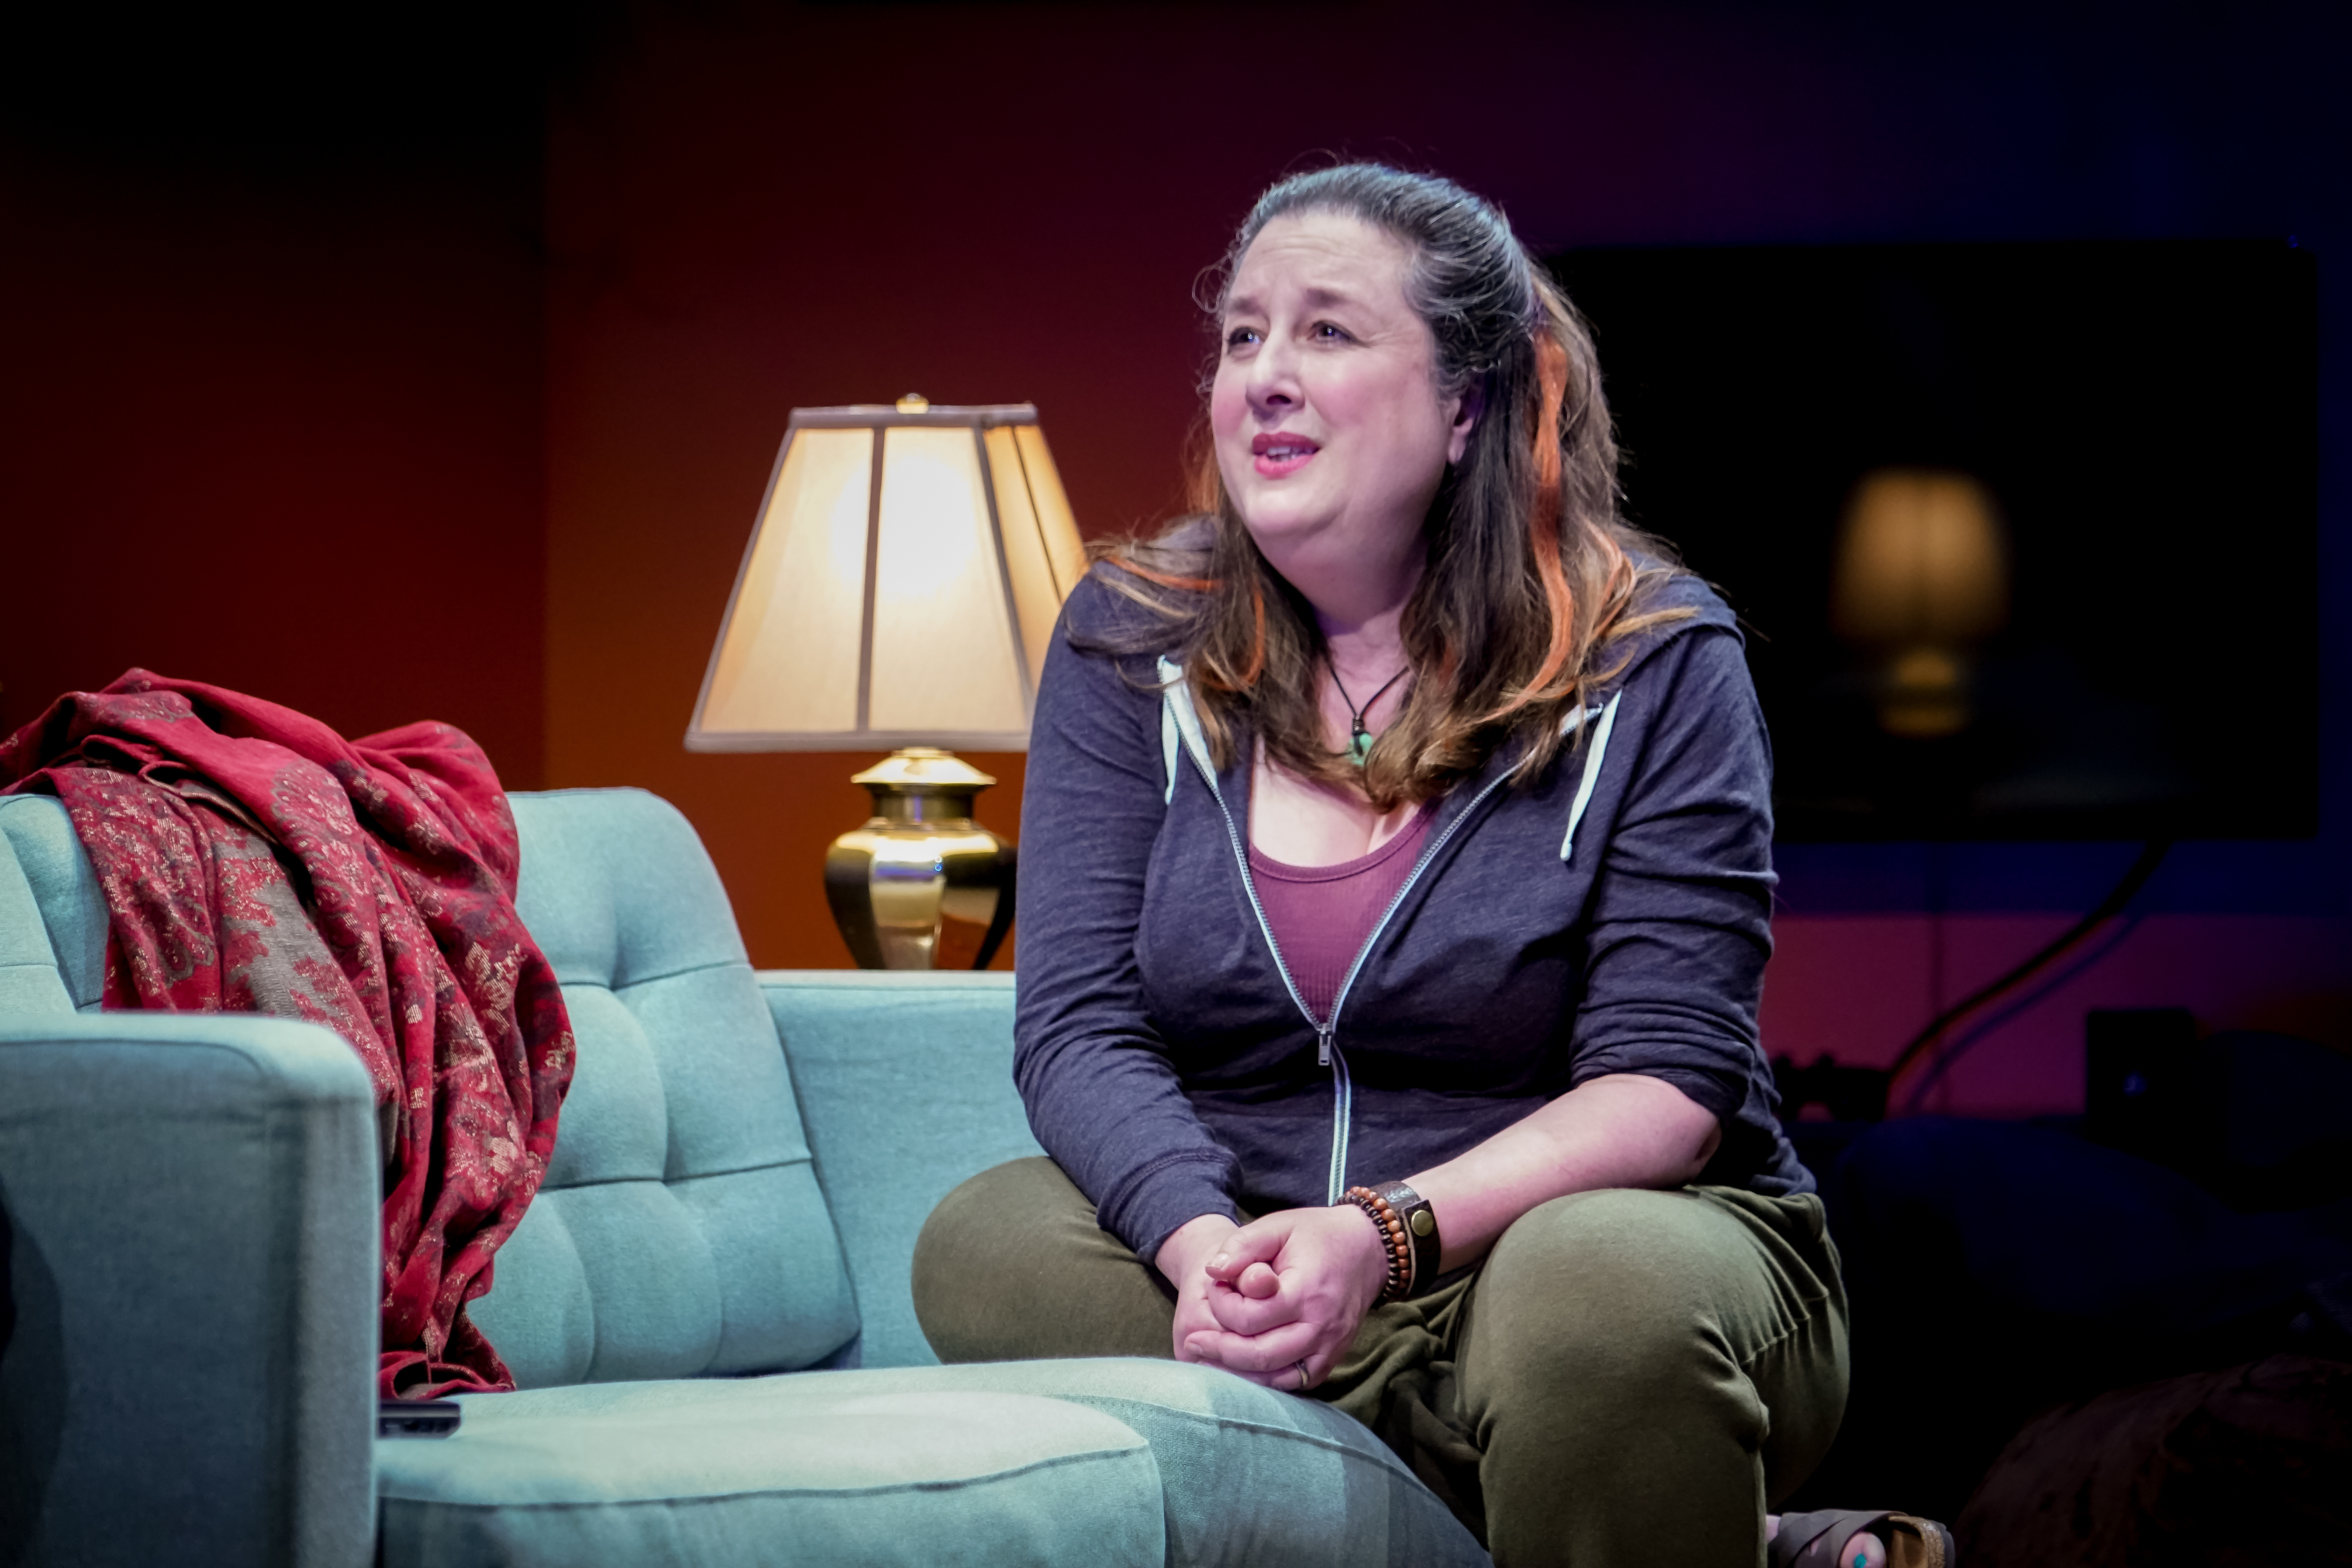 Seattle Rep production of Tiny Beautiful Things. Photo by Alabastro Photography.